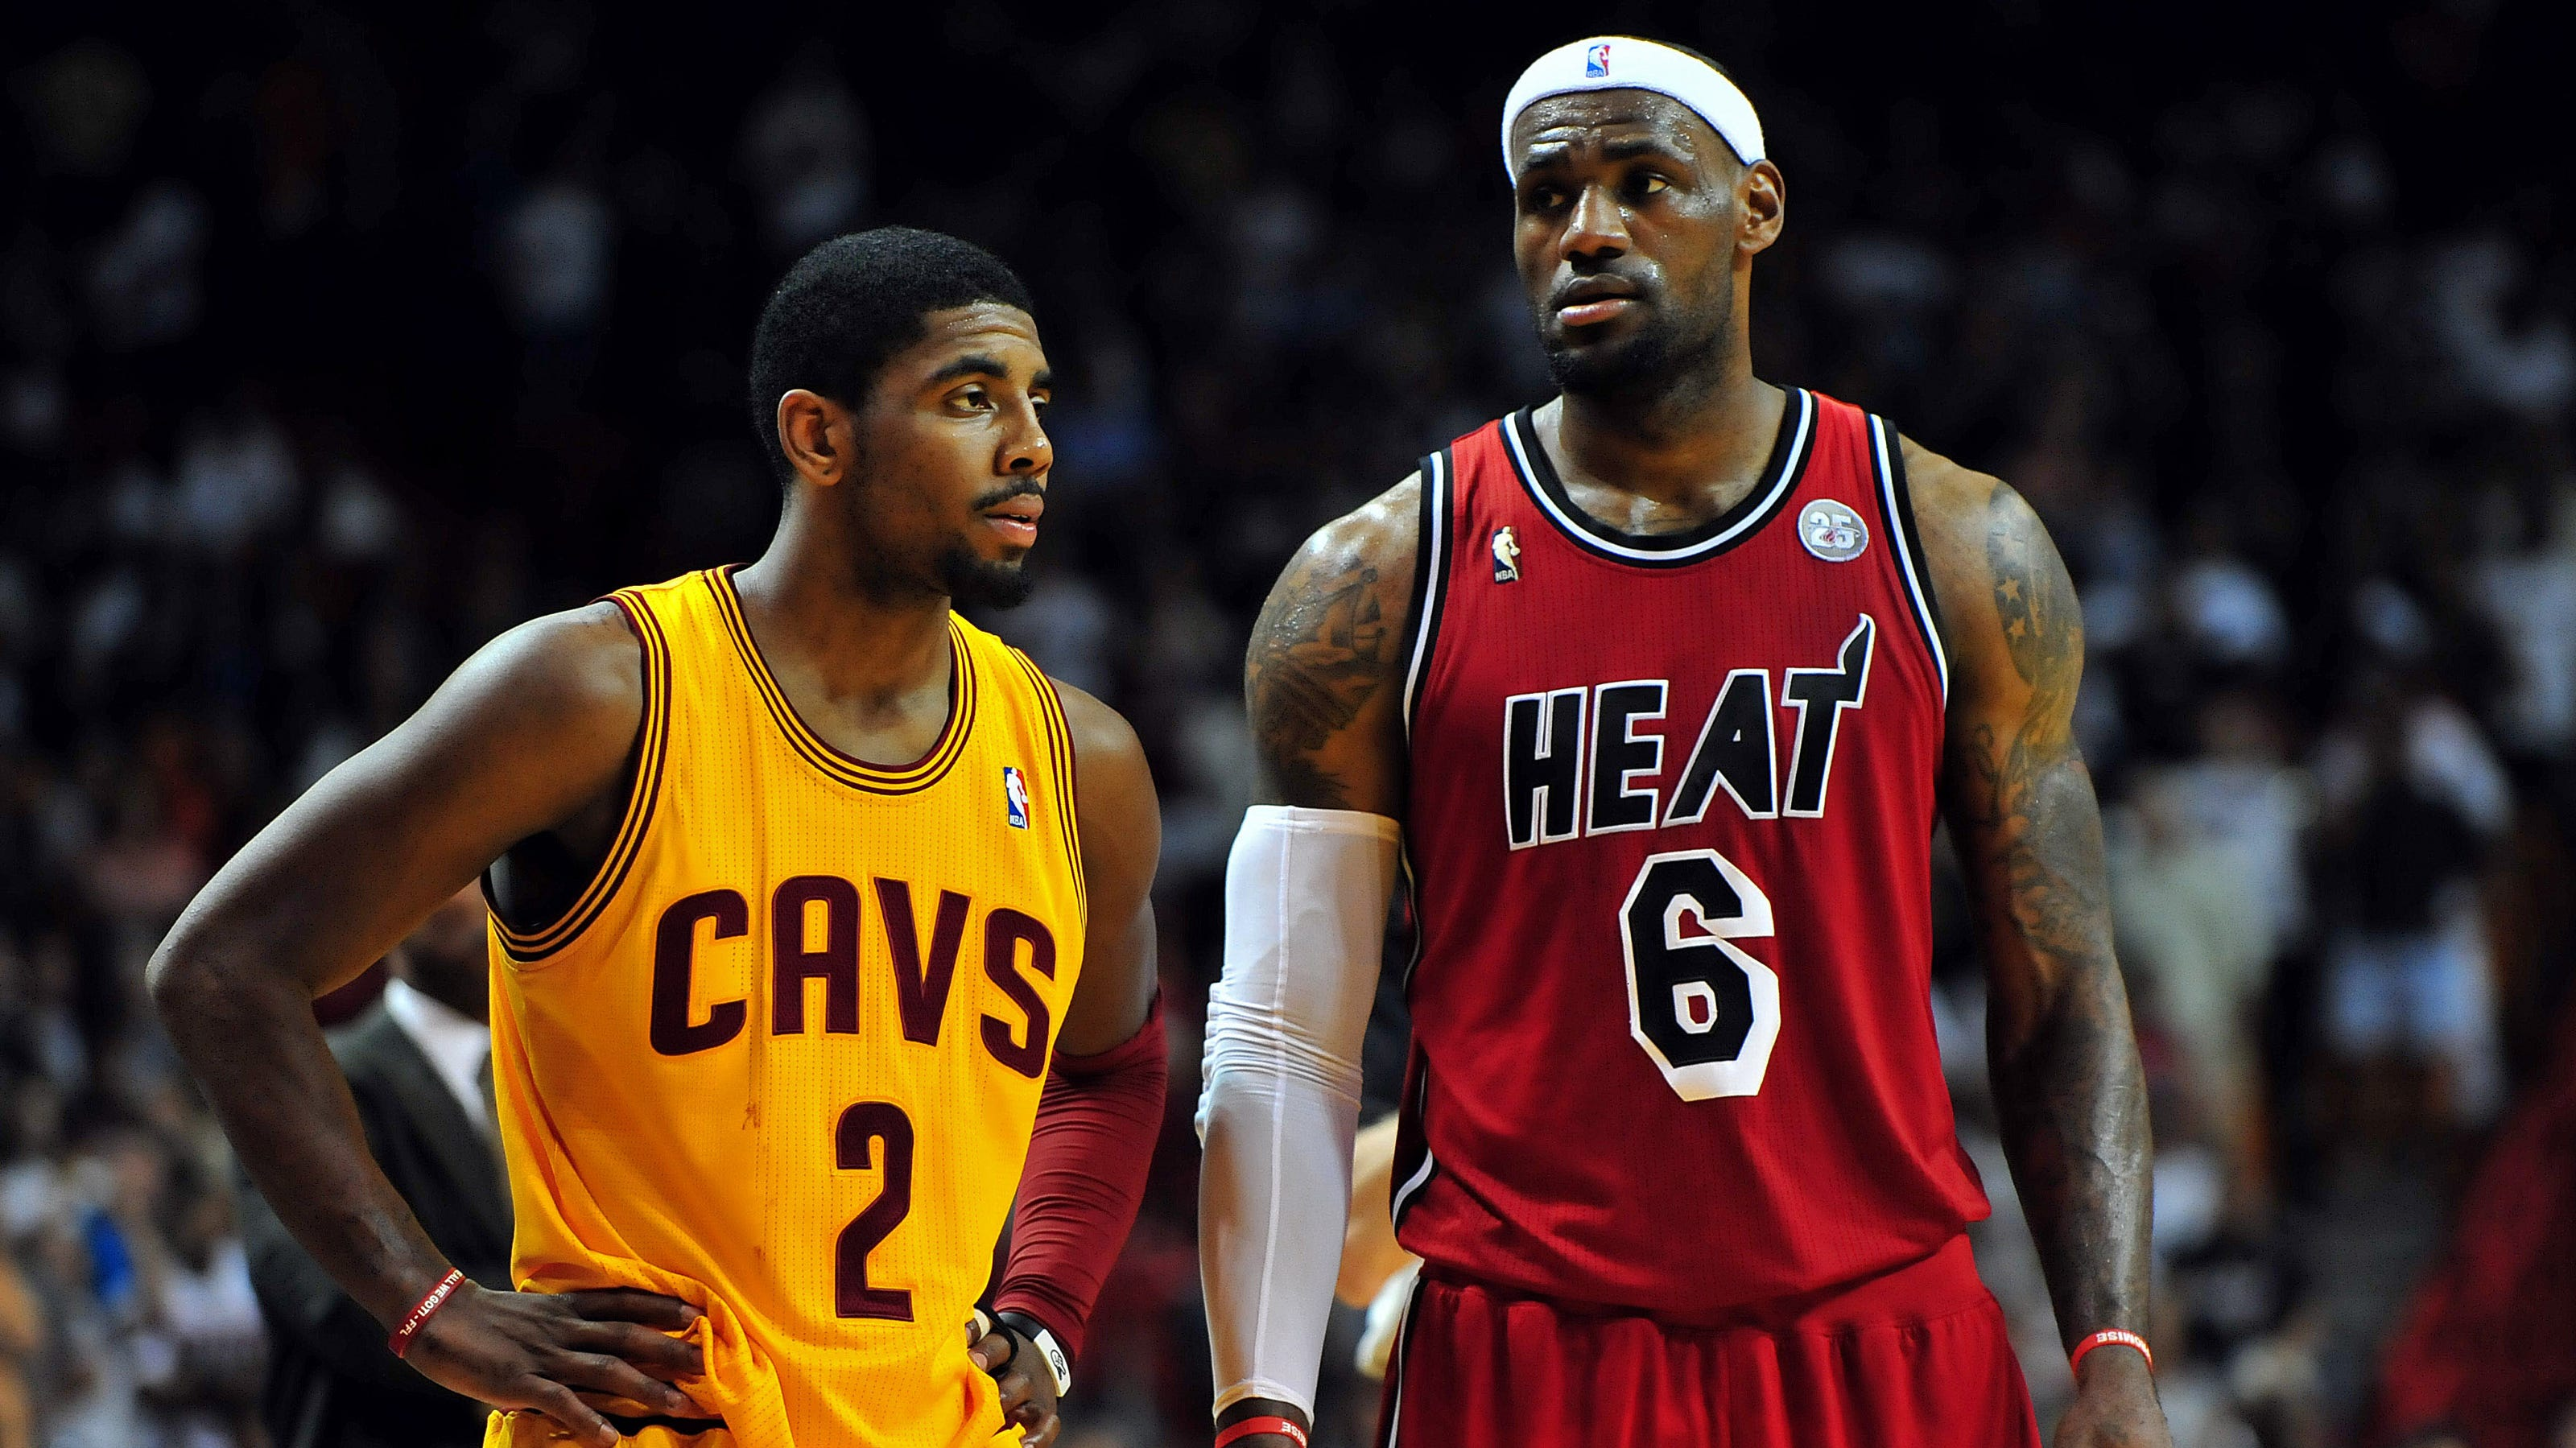 Kyrie Irving ready to blossom next to LeBron James